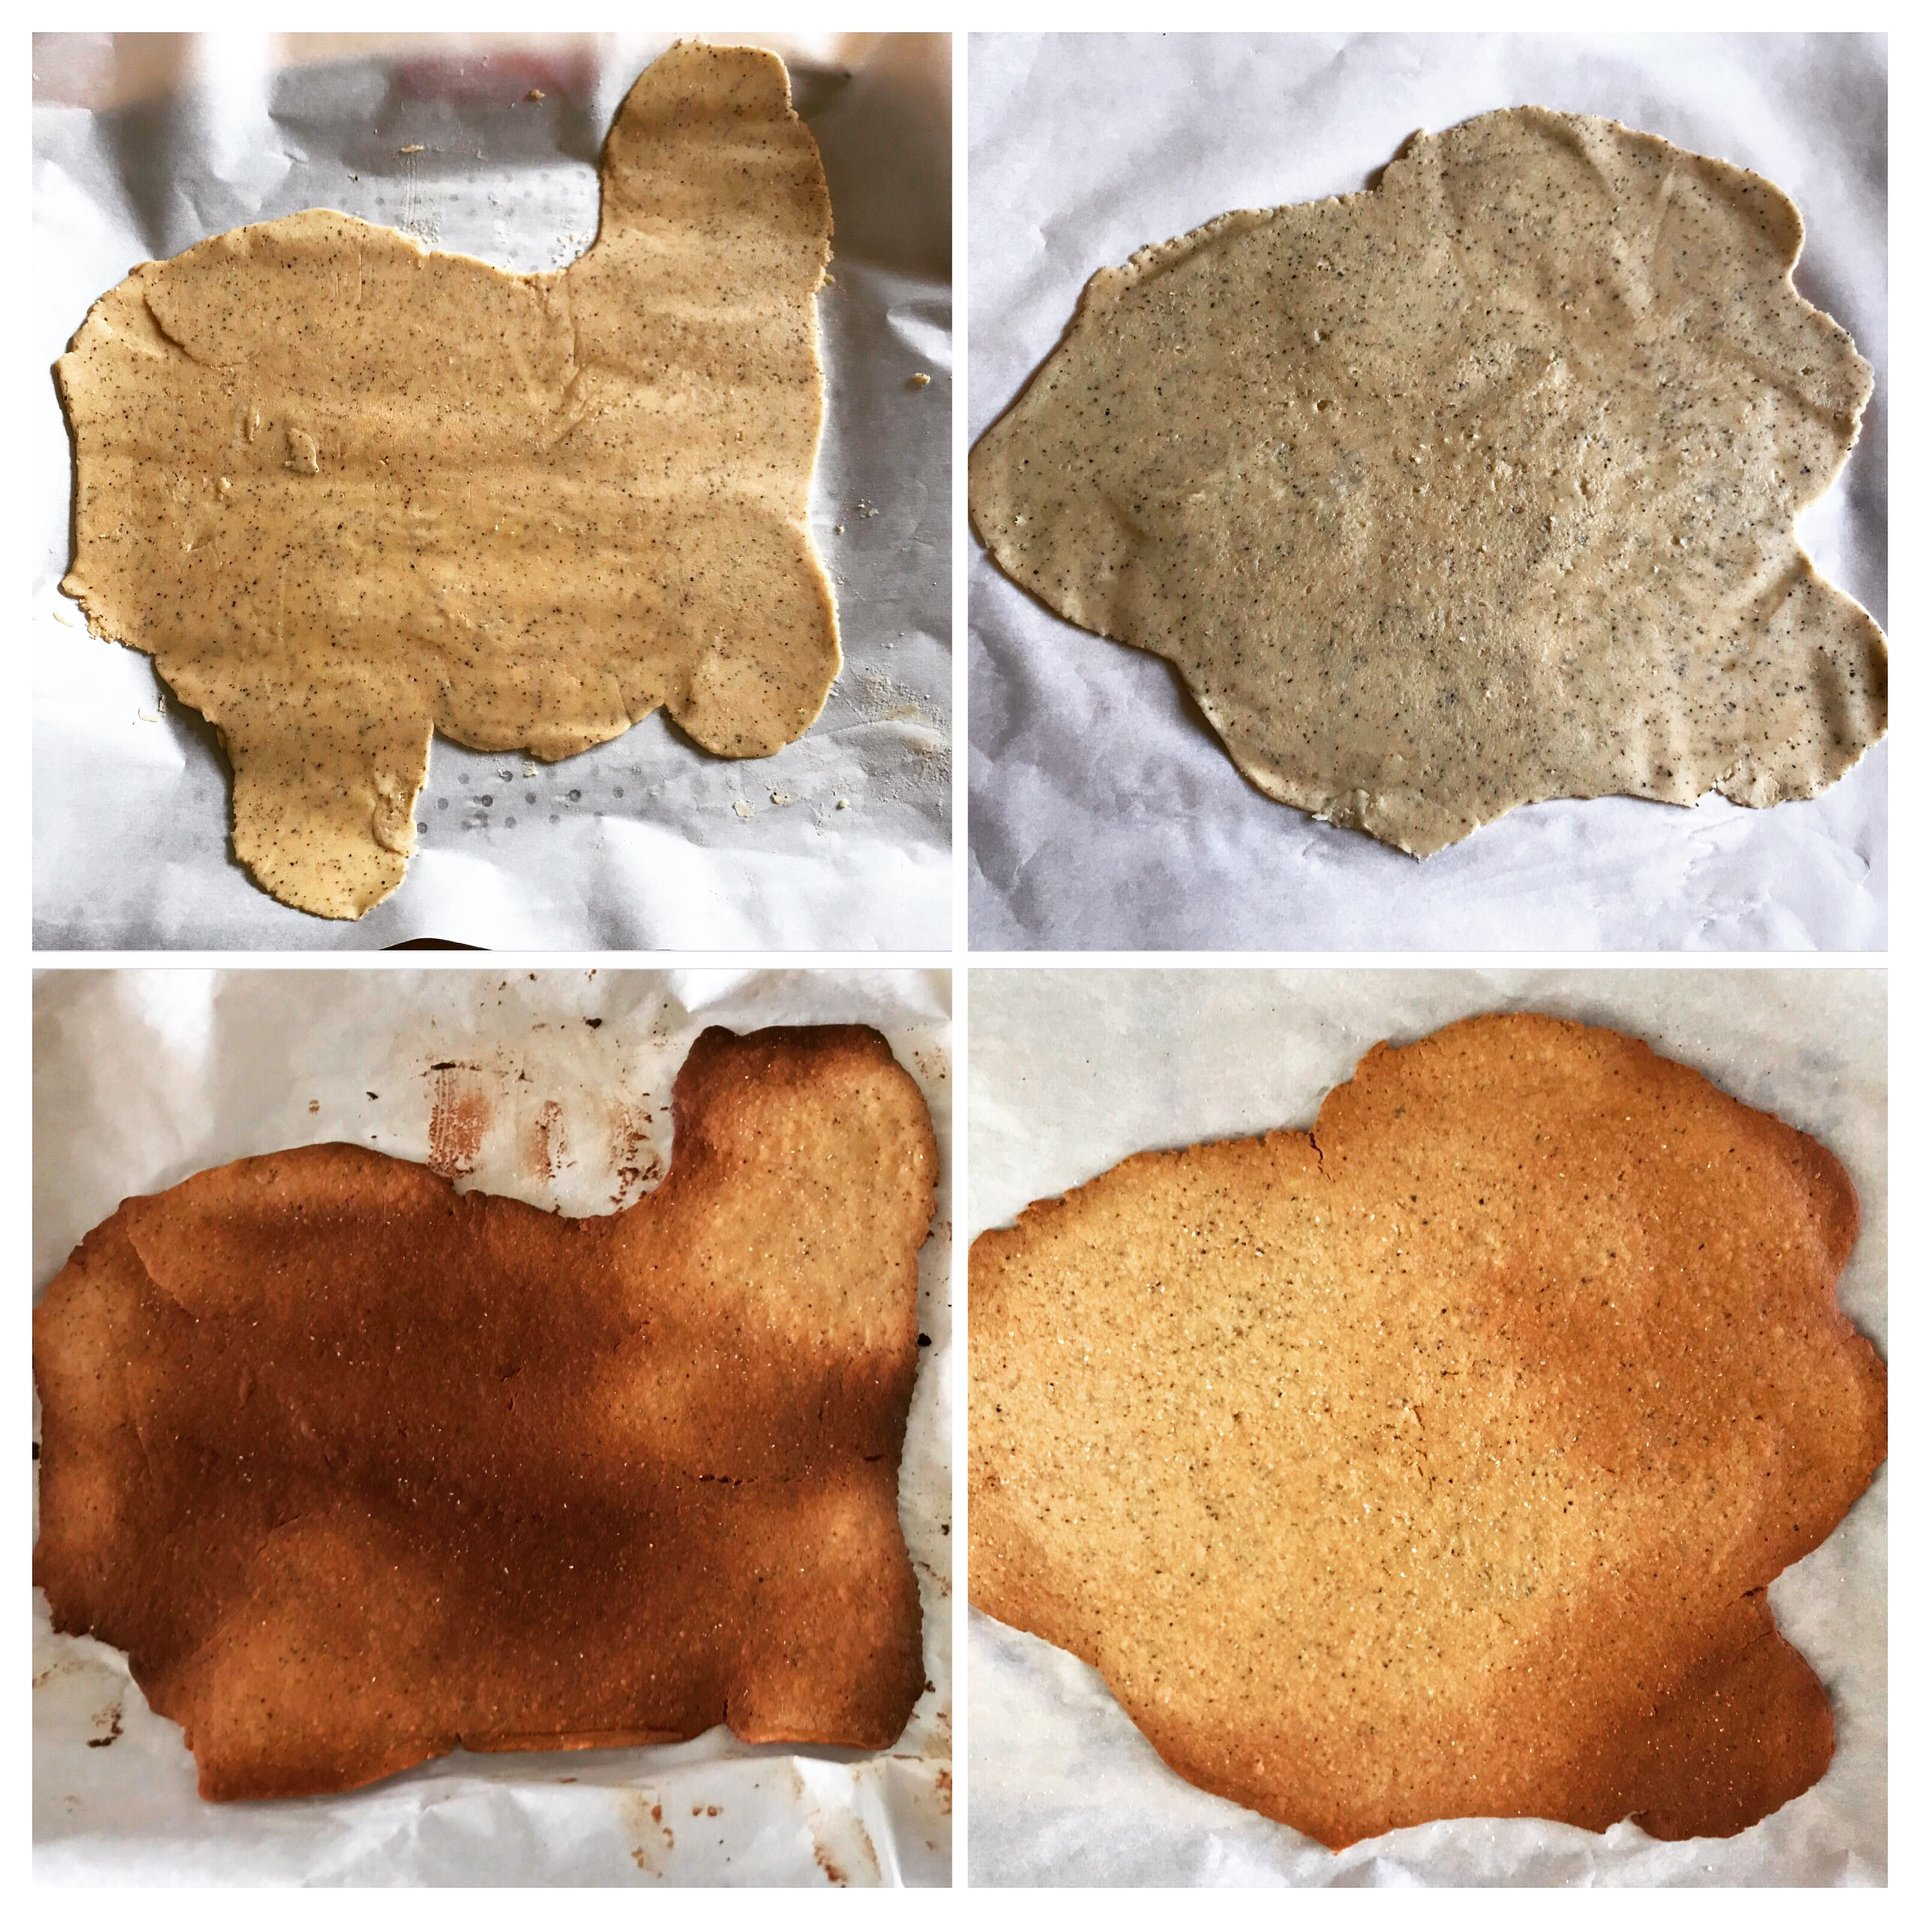 Cracker sheets before & after baking